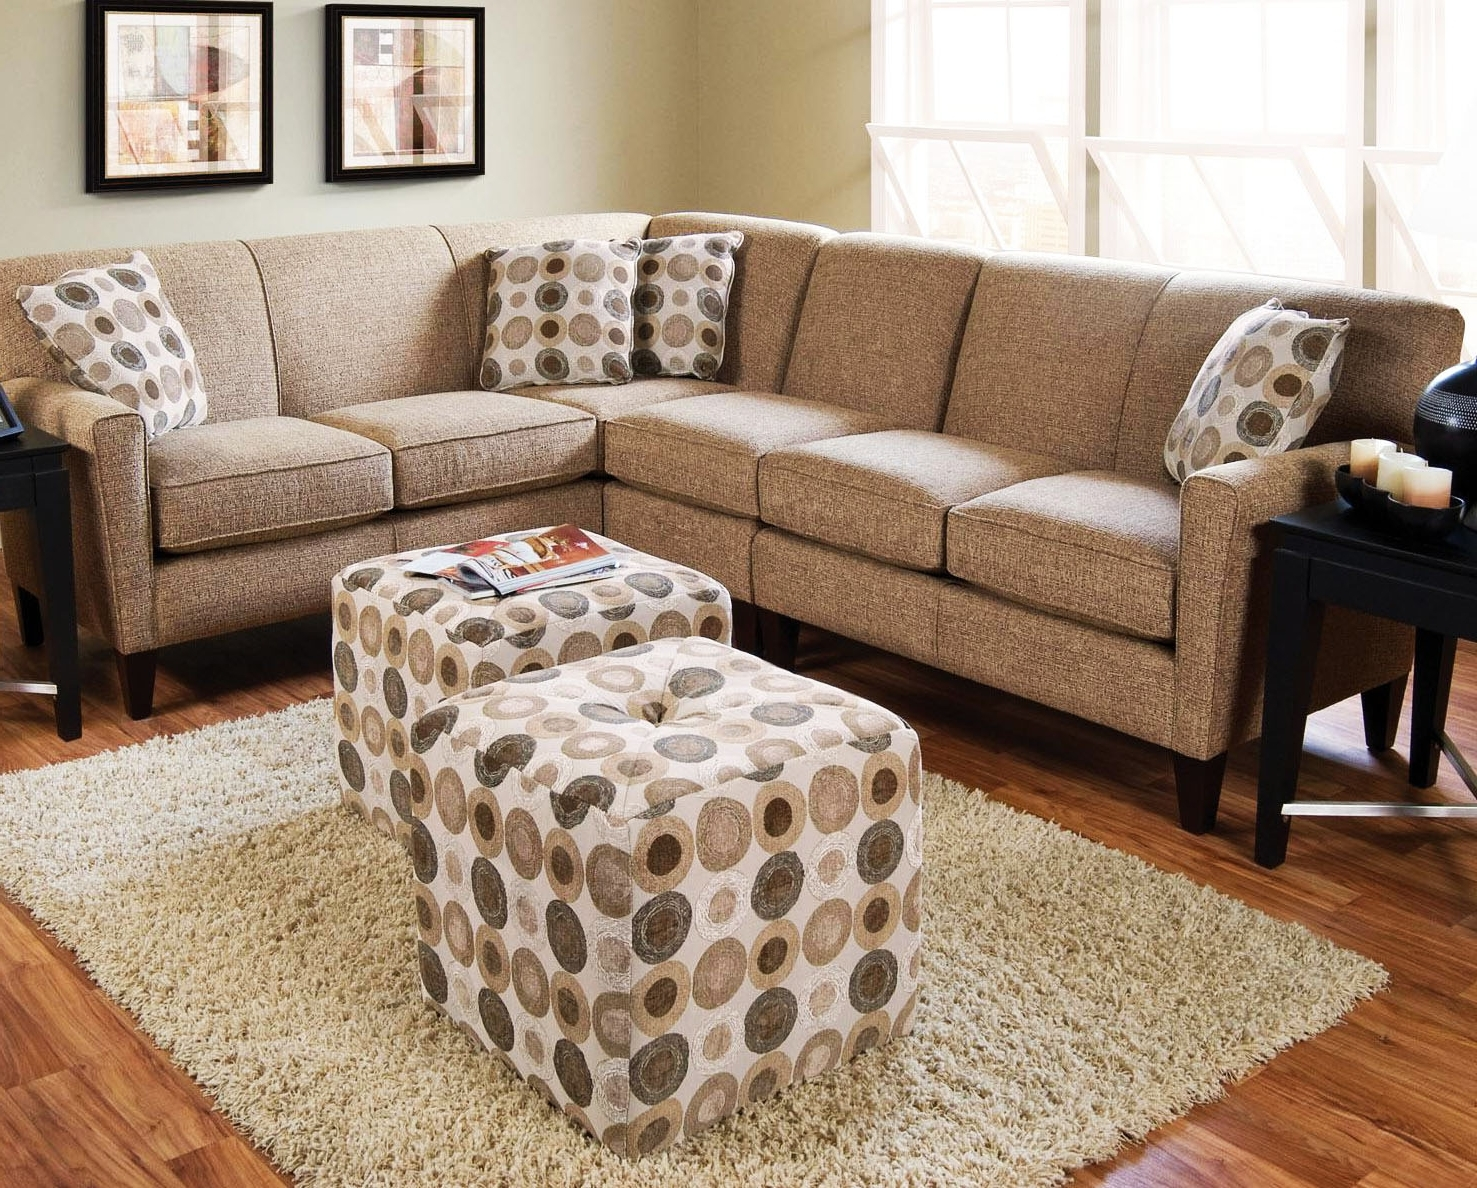 Awesome Small Sectional Sofa With Chaise Lounge 92 On Small Space Intended For Most Up To Date Small Sectional Sofas With Chaise Lounge (View 14 of 15)